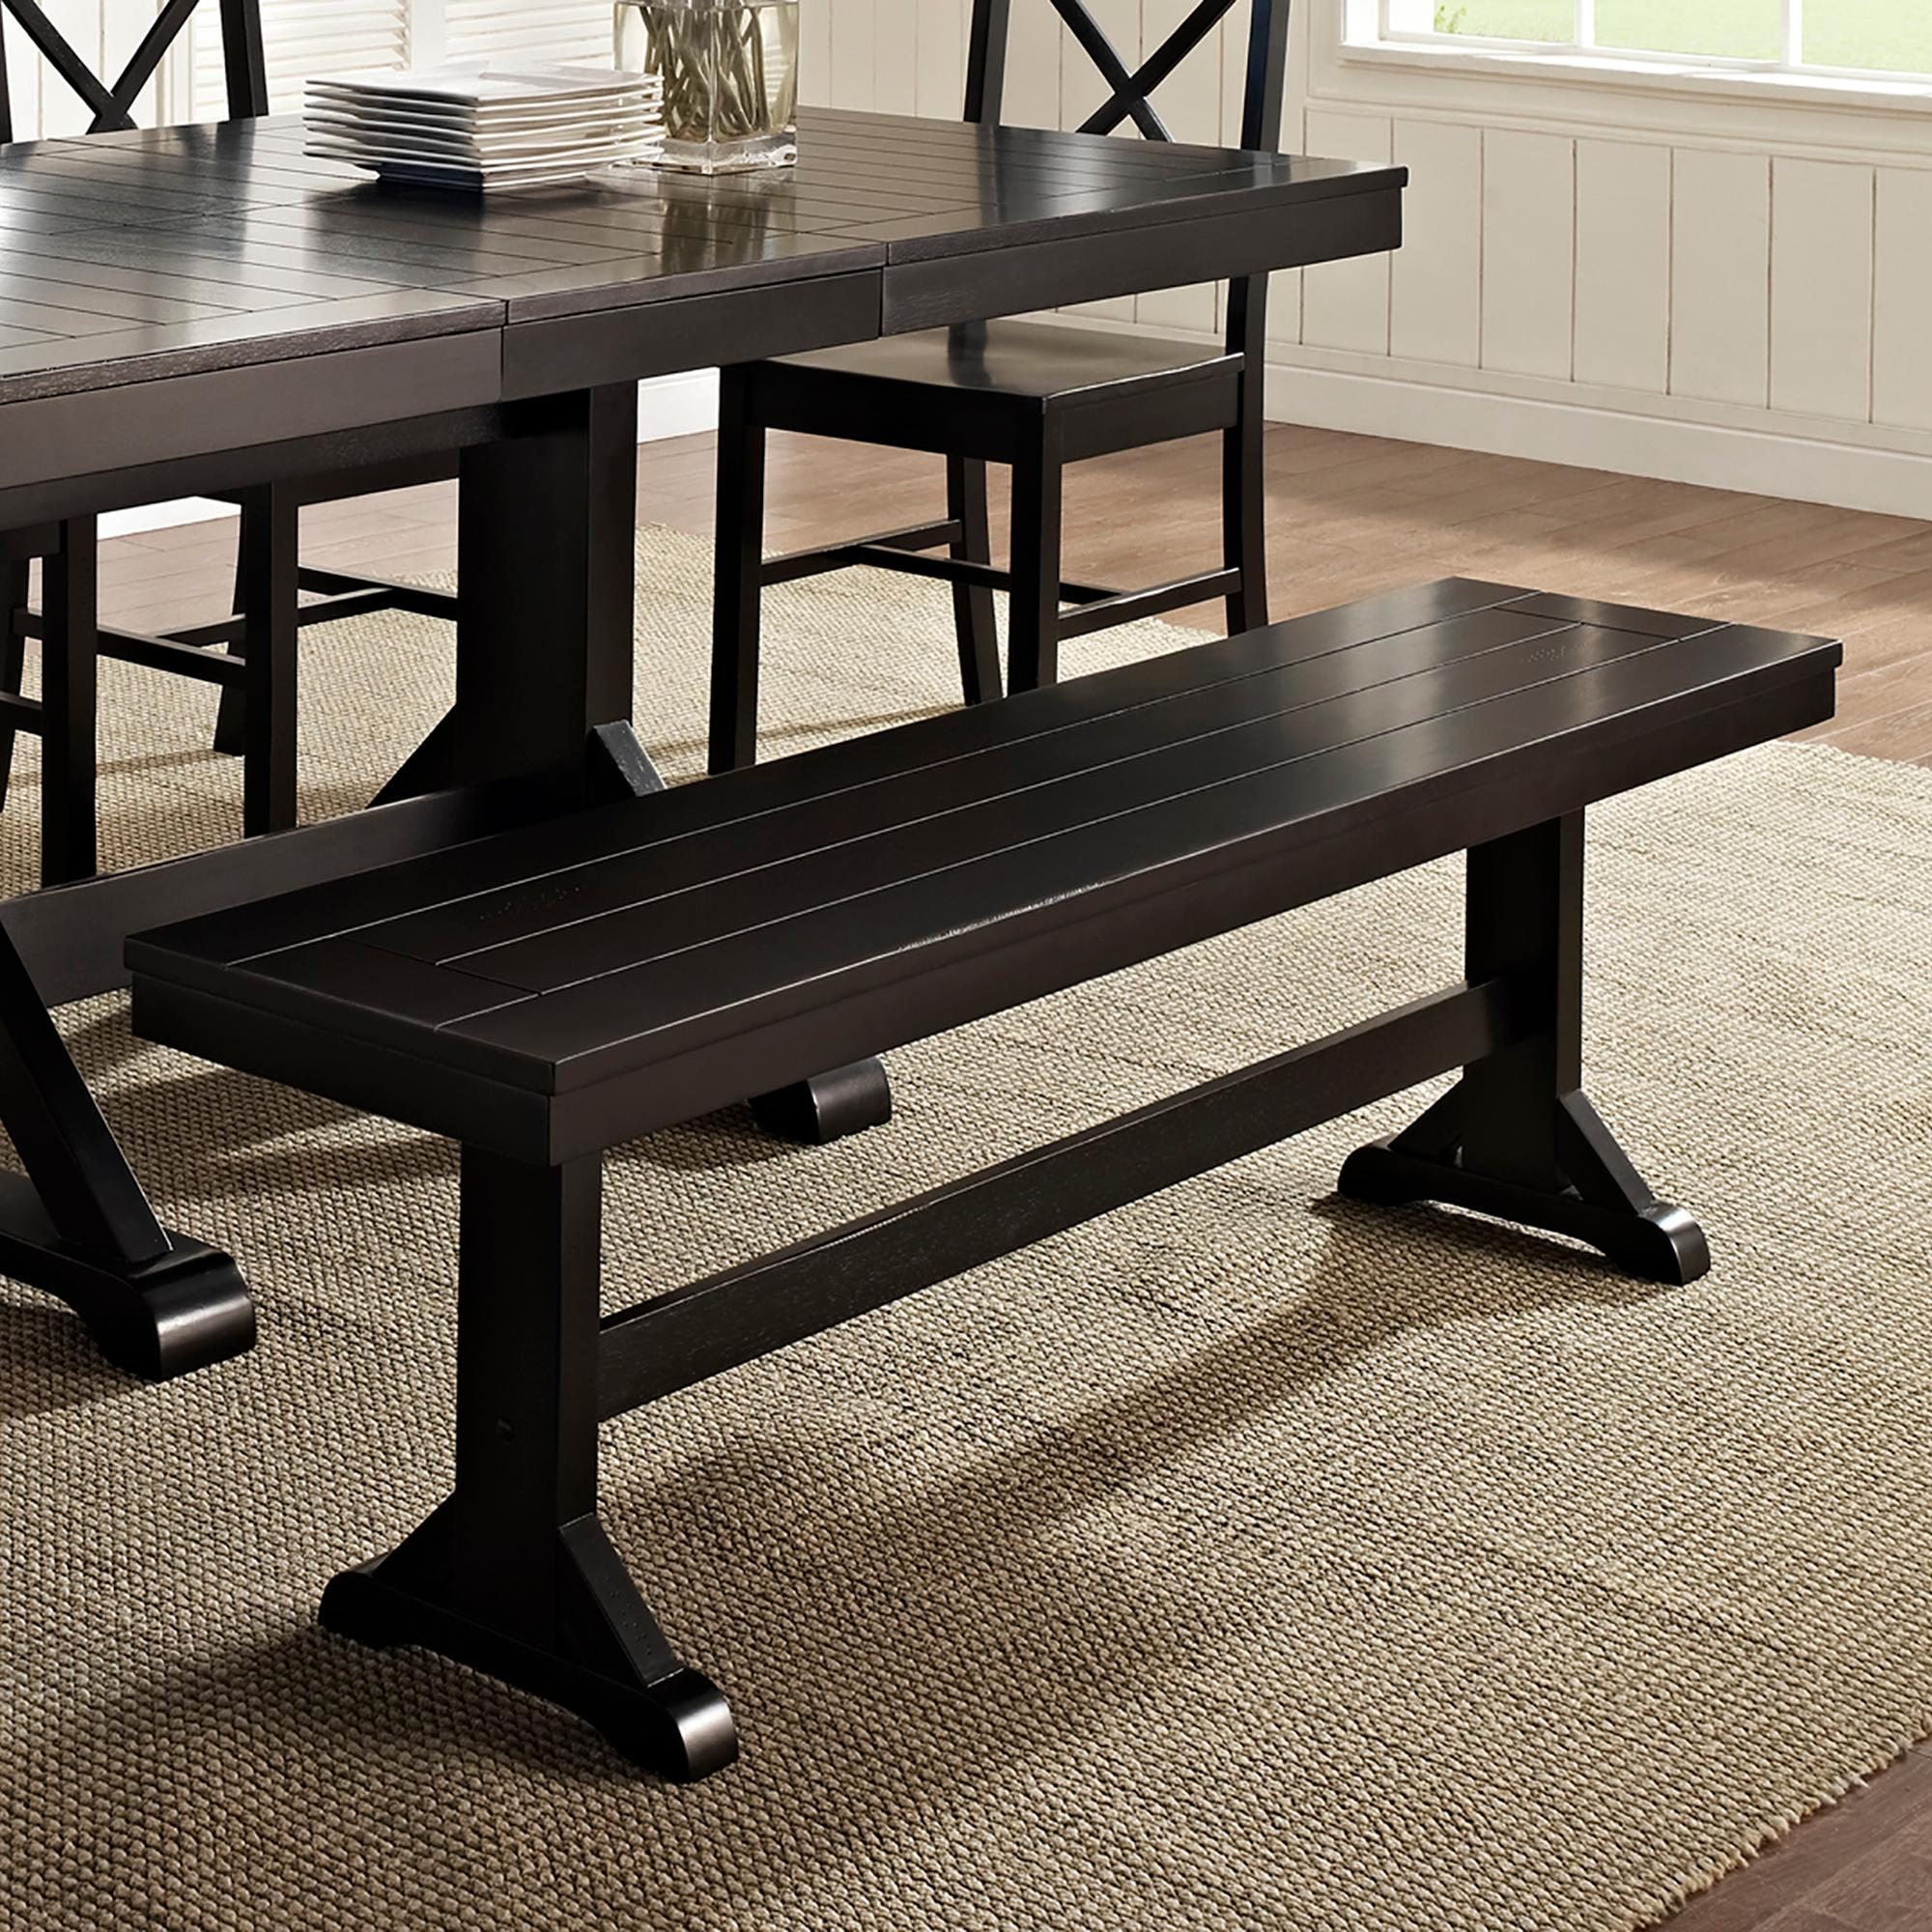 We furniture solid wood dark oak dining bench Oak bench